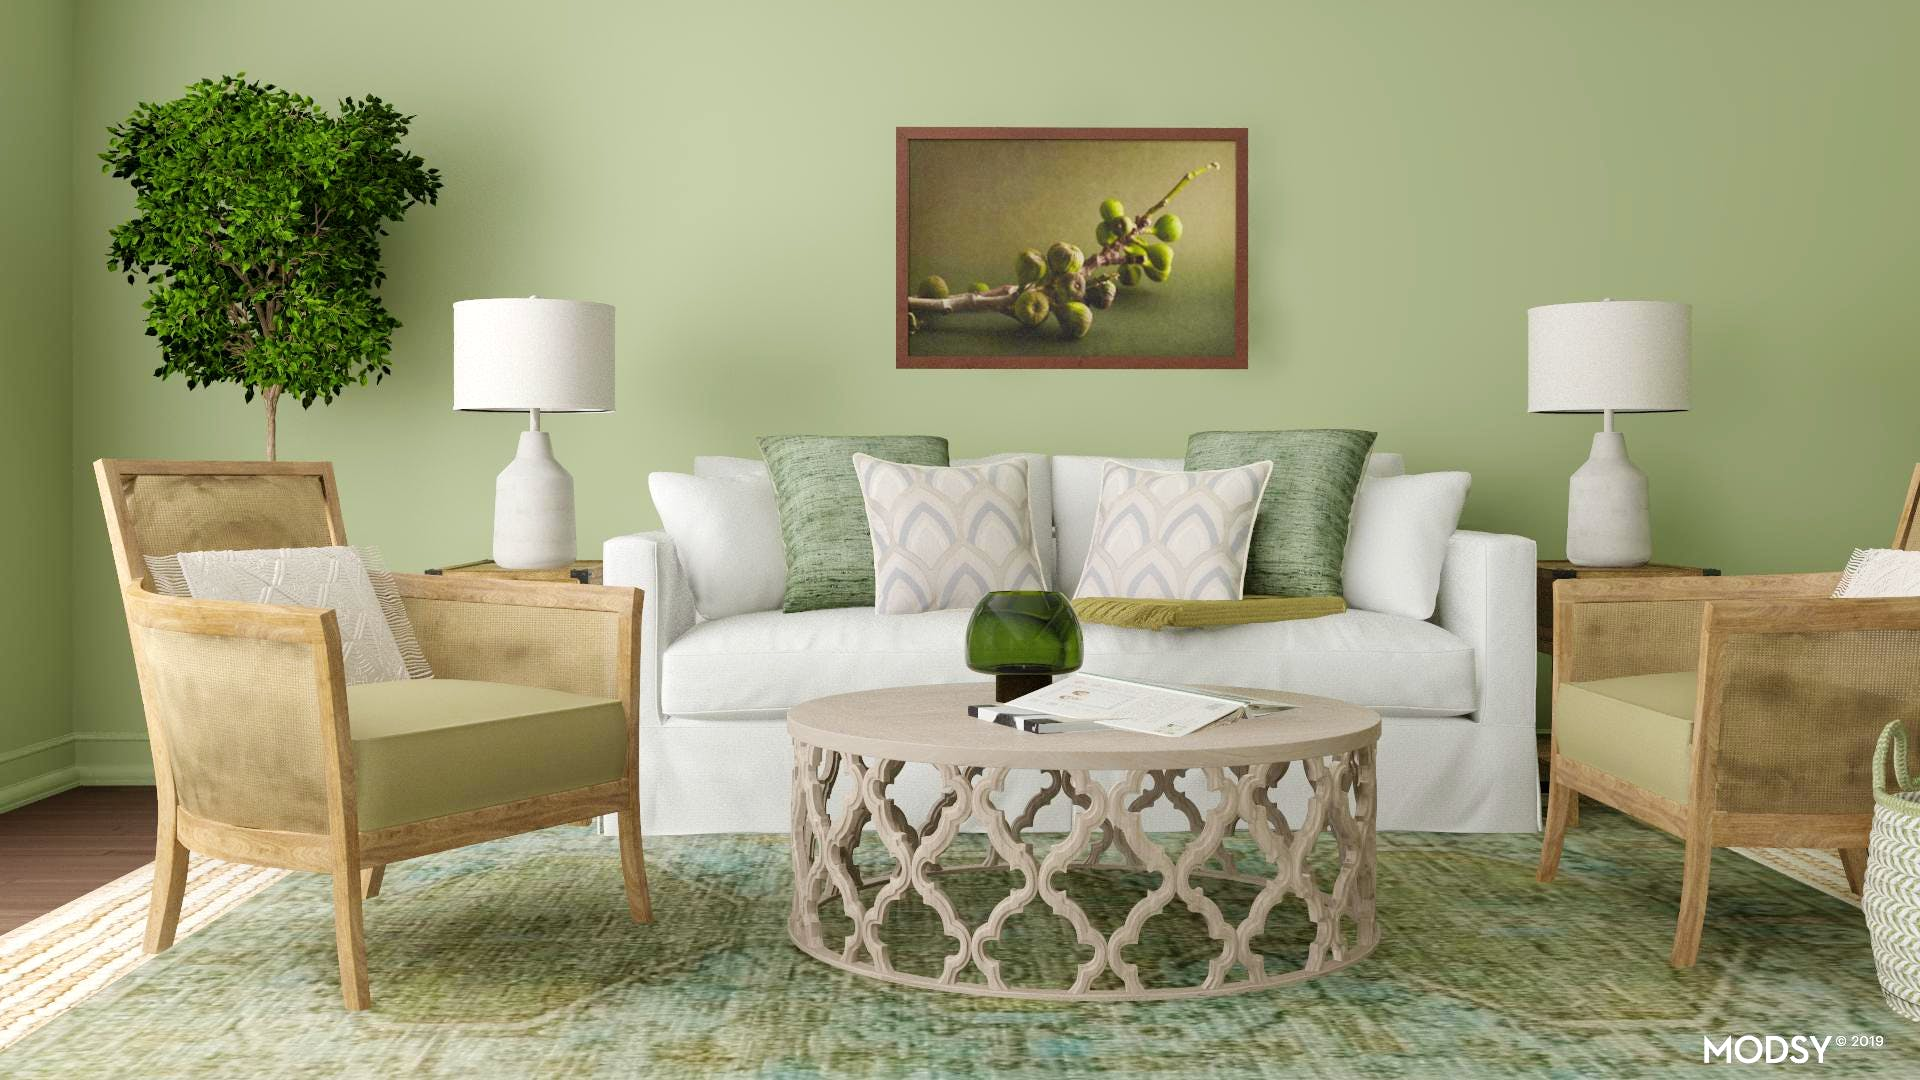 A Monochrome Green Living Room | Traditional/Classic-Style ...